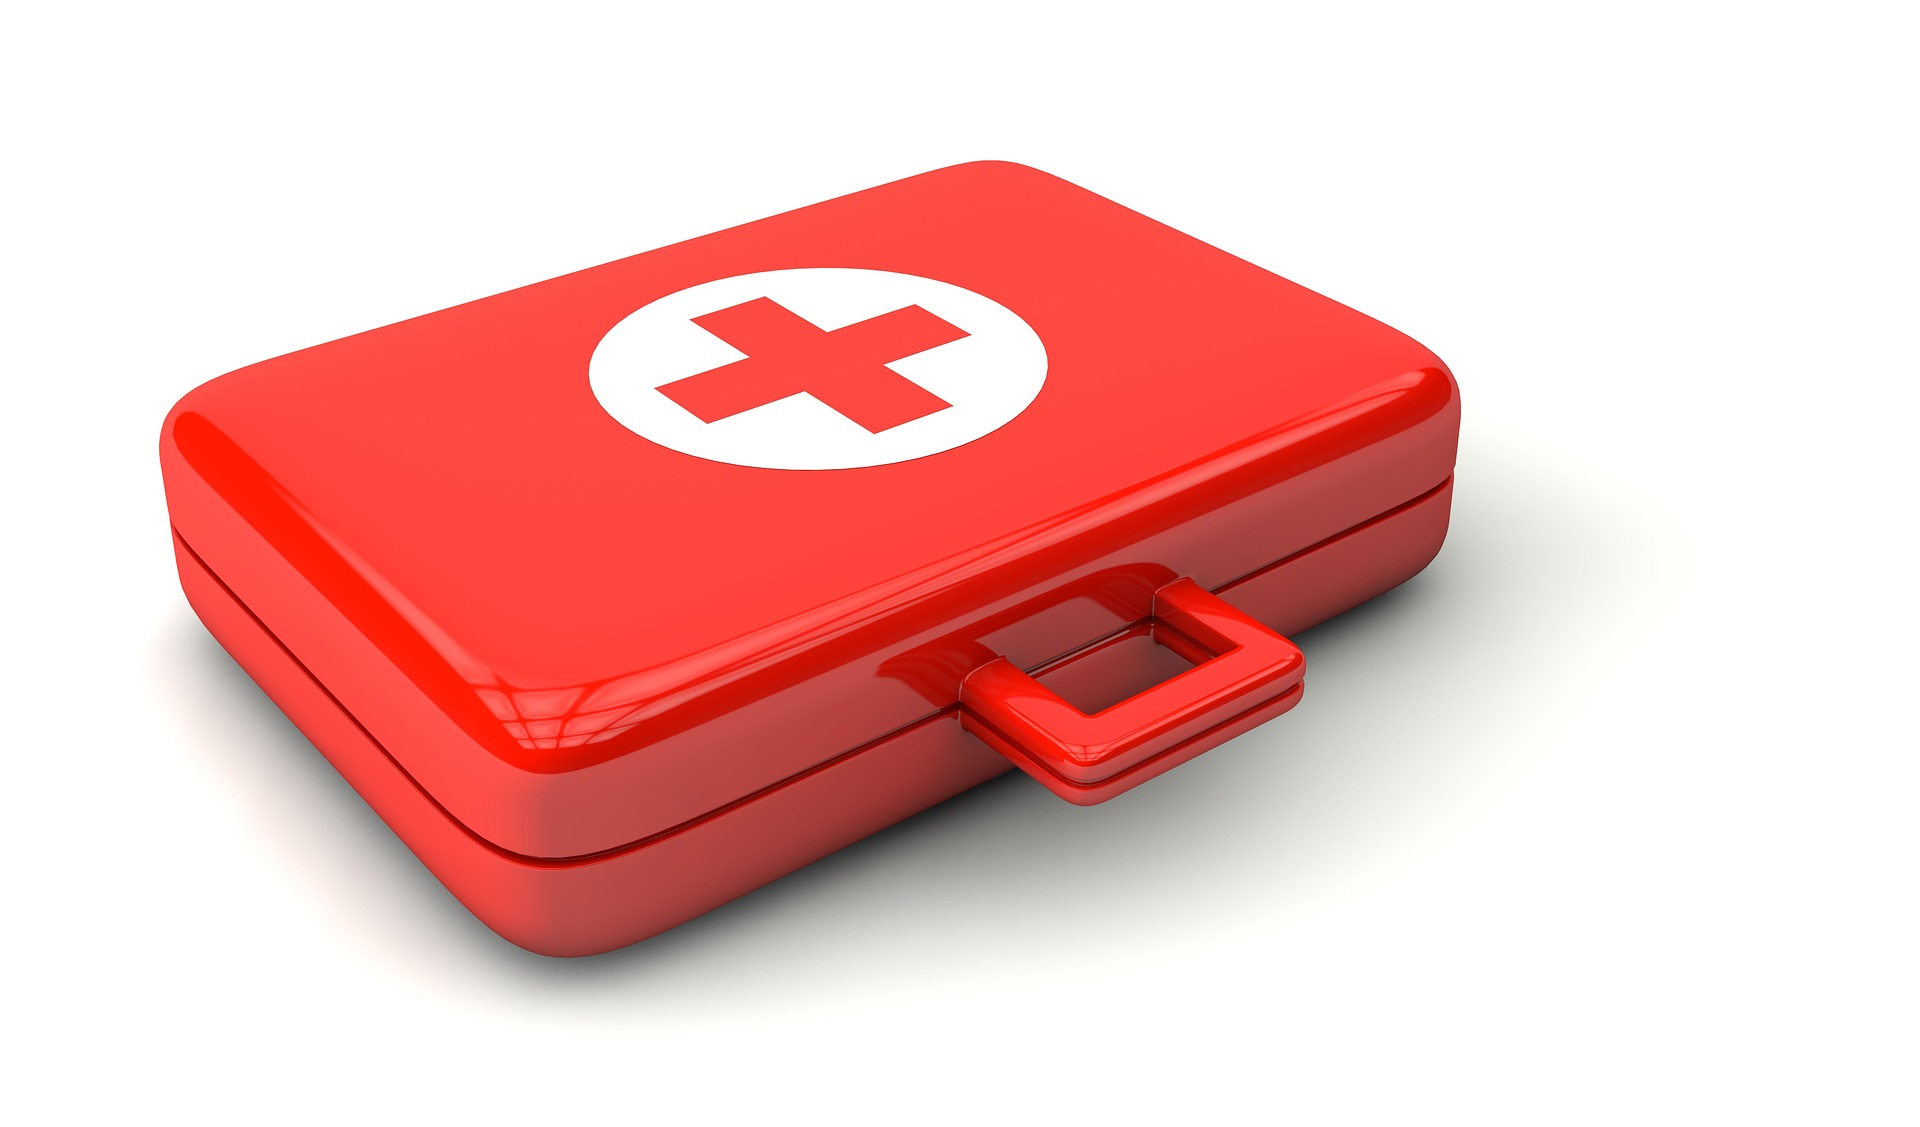 First Aid Kit Servicing Program